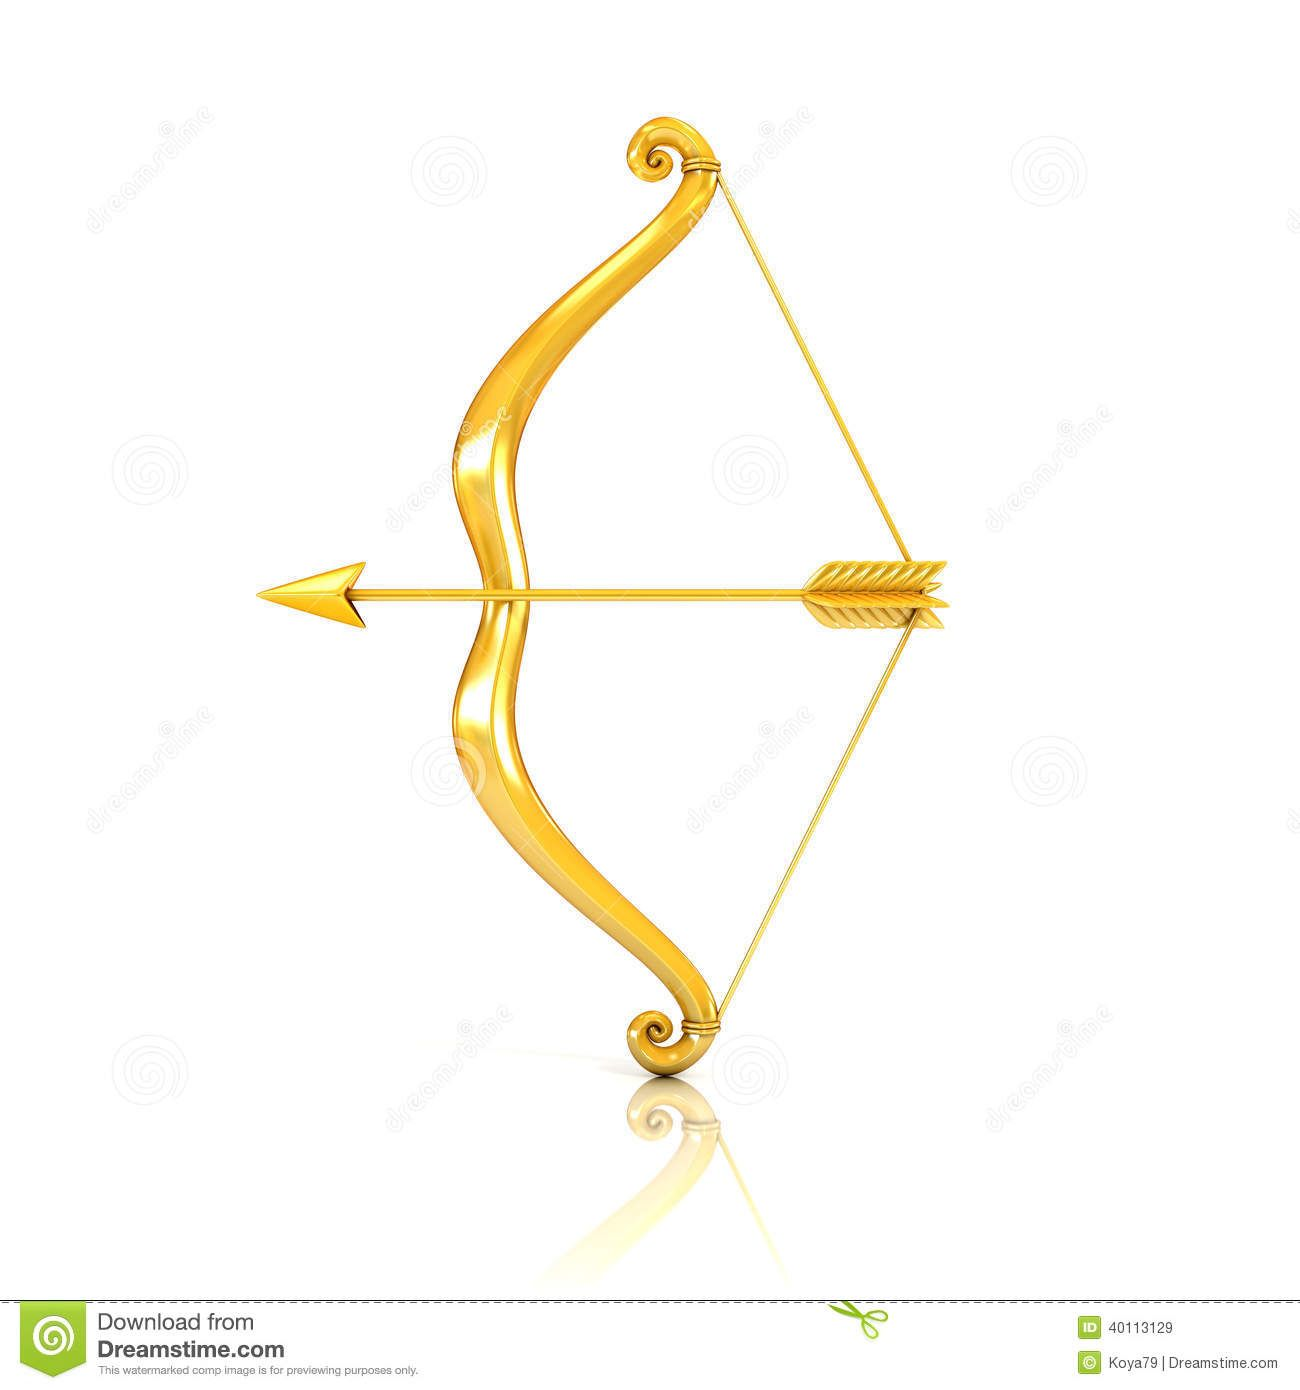 Artemis Symbol Bow And Arrow Google Search Imagery Ideas